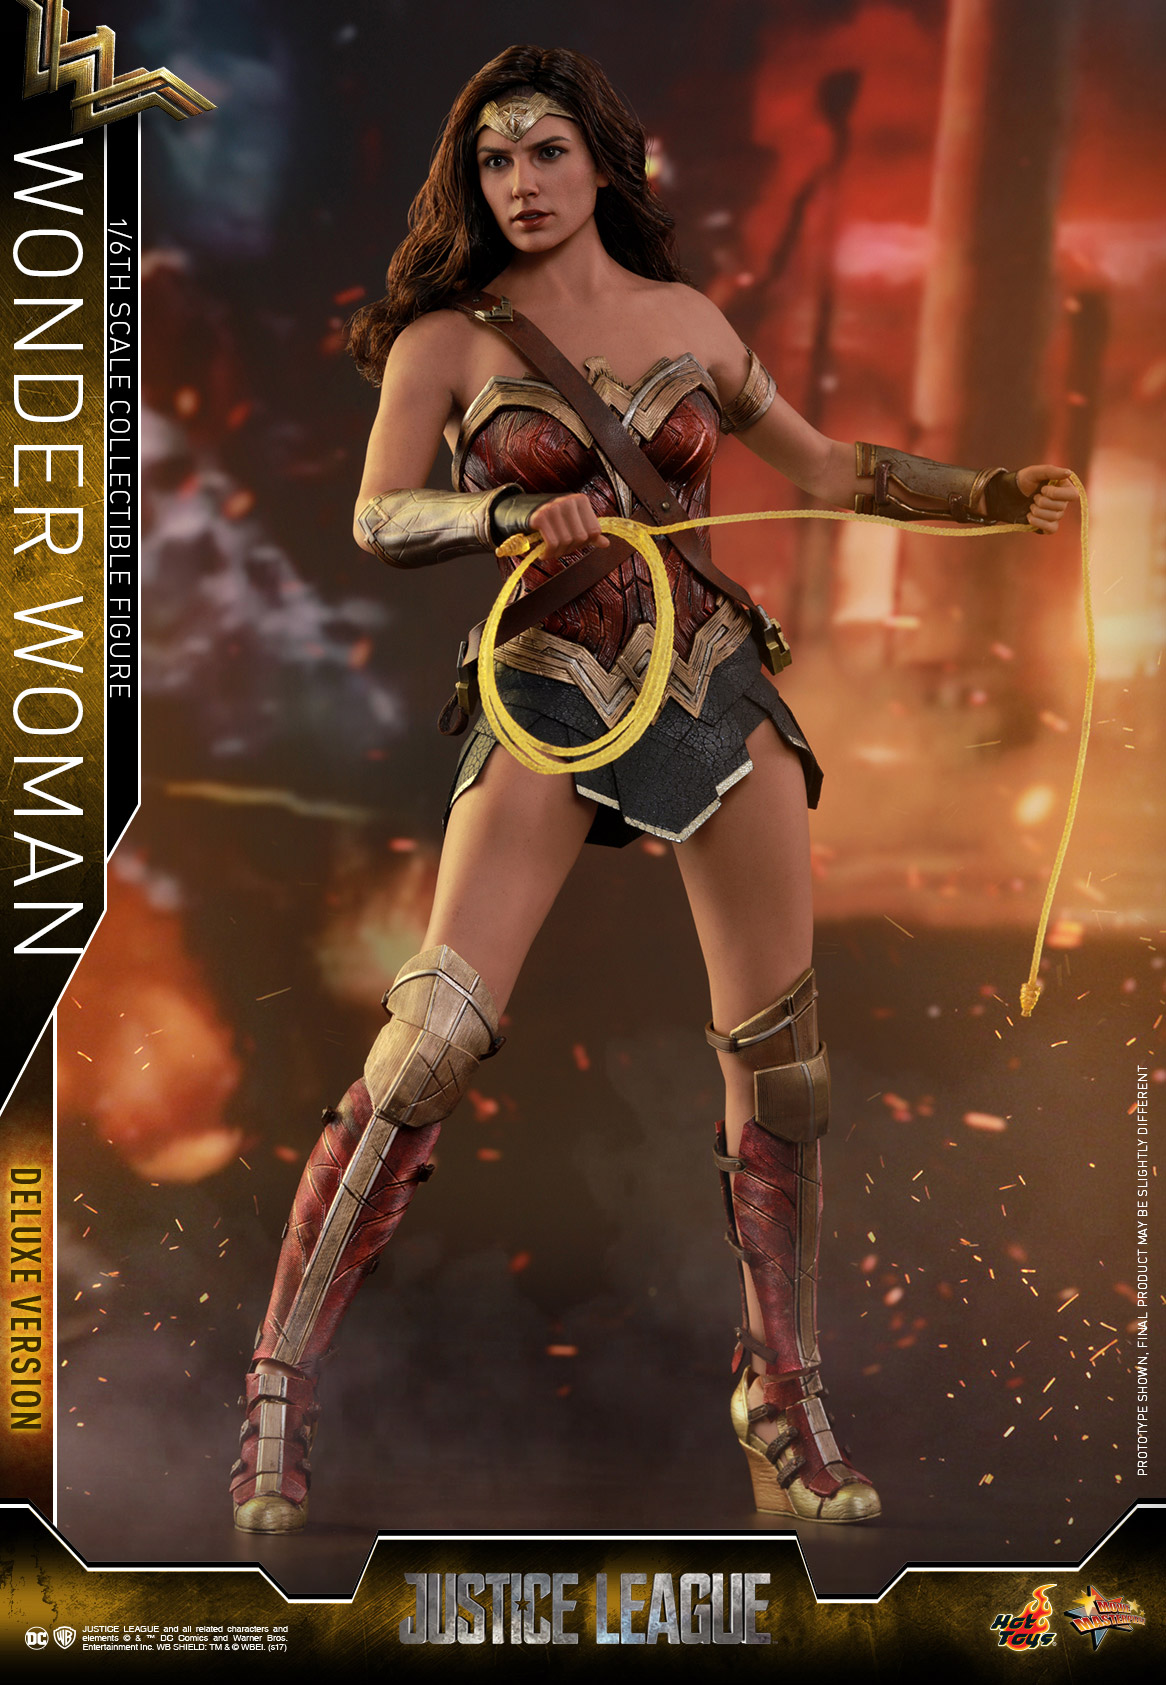 Hot-Toys-Justice-League-Wonder-Woman-collectible-figure-Deluxe_PR-7.jpg